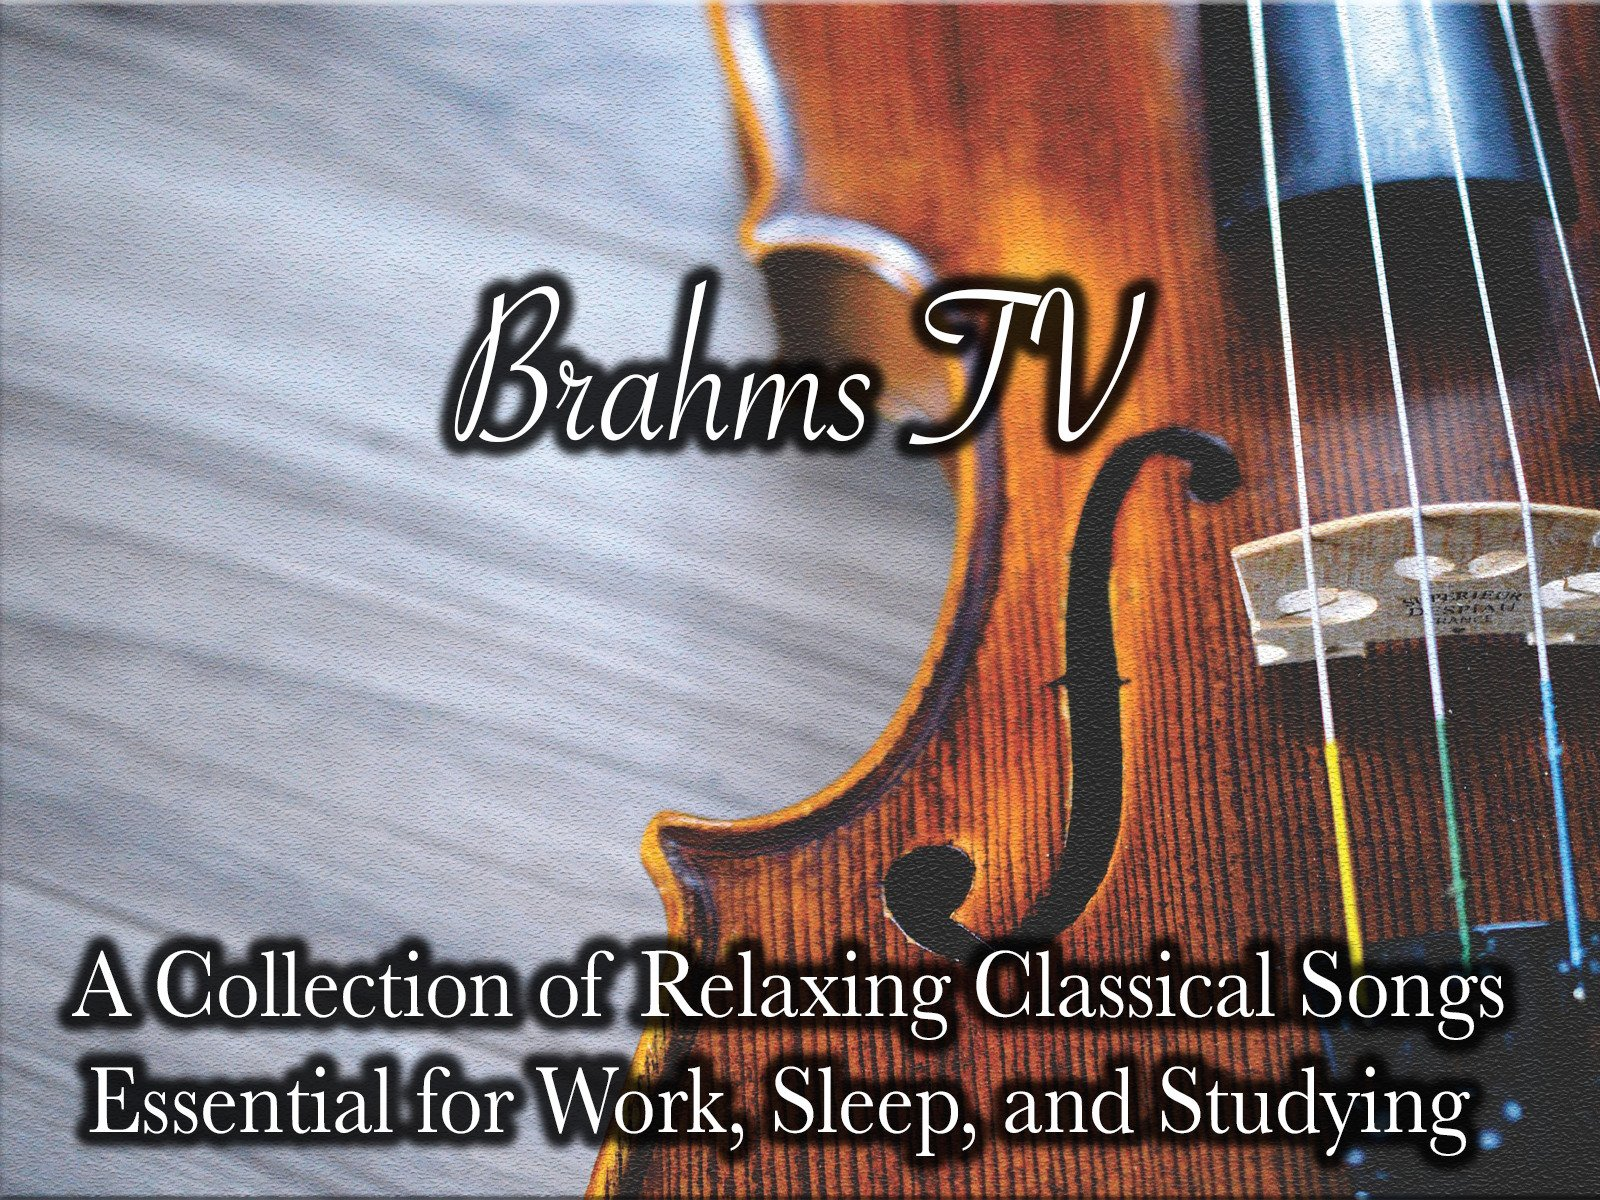 Brahms TV A Collection of Relaxing Classical Songs Essential for Work, Sleeping and Studying - Season 1